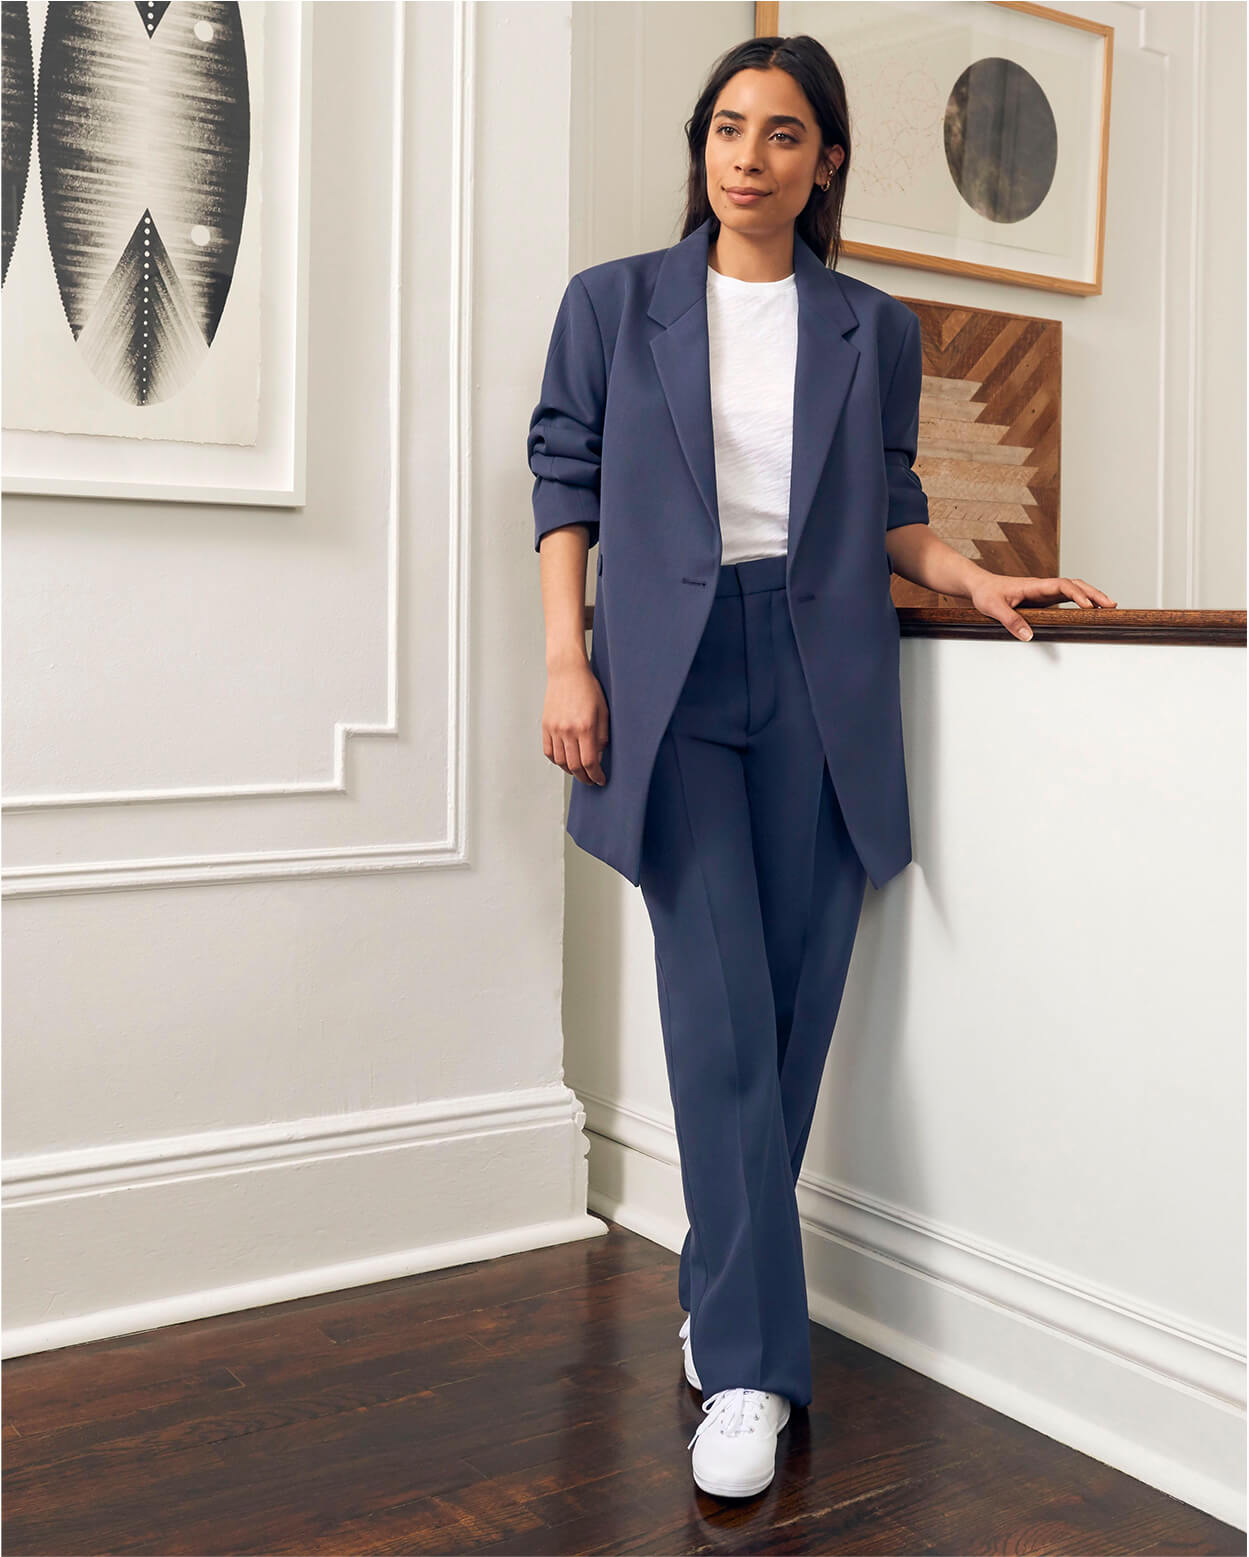 Biance Valle in Toteme Suit